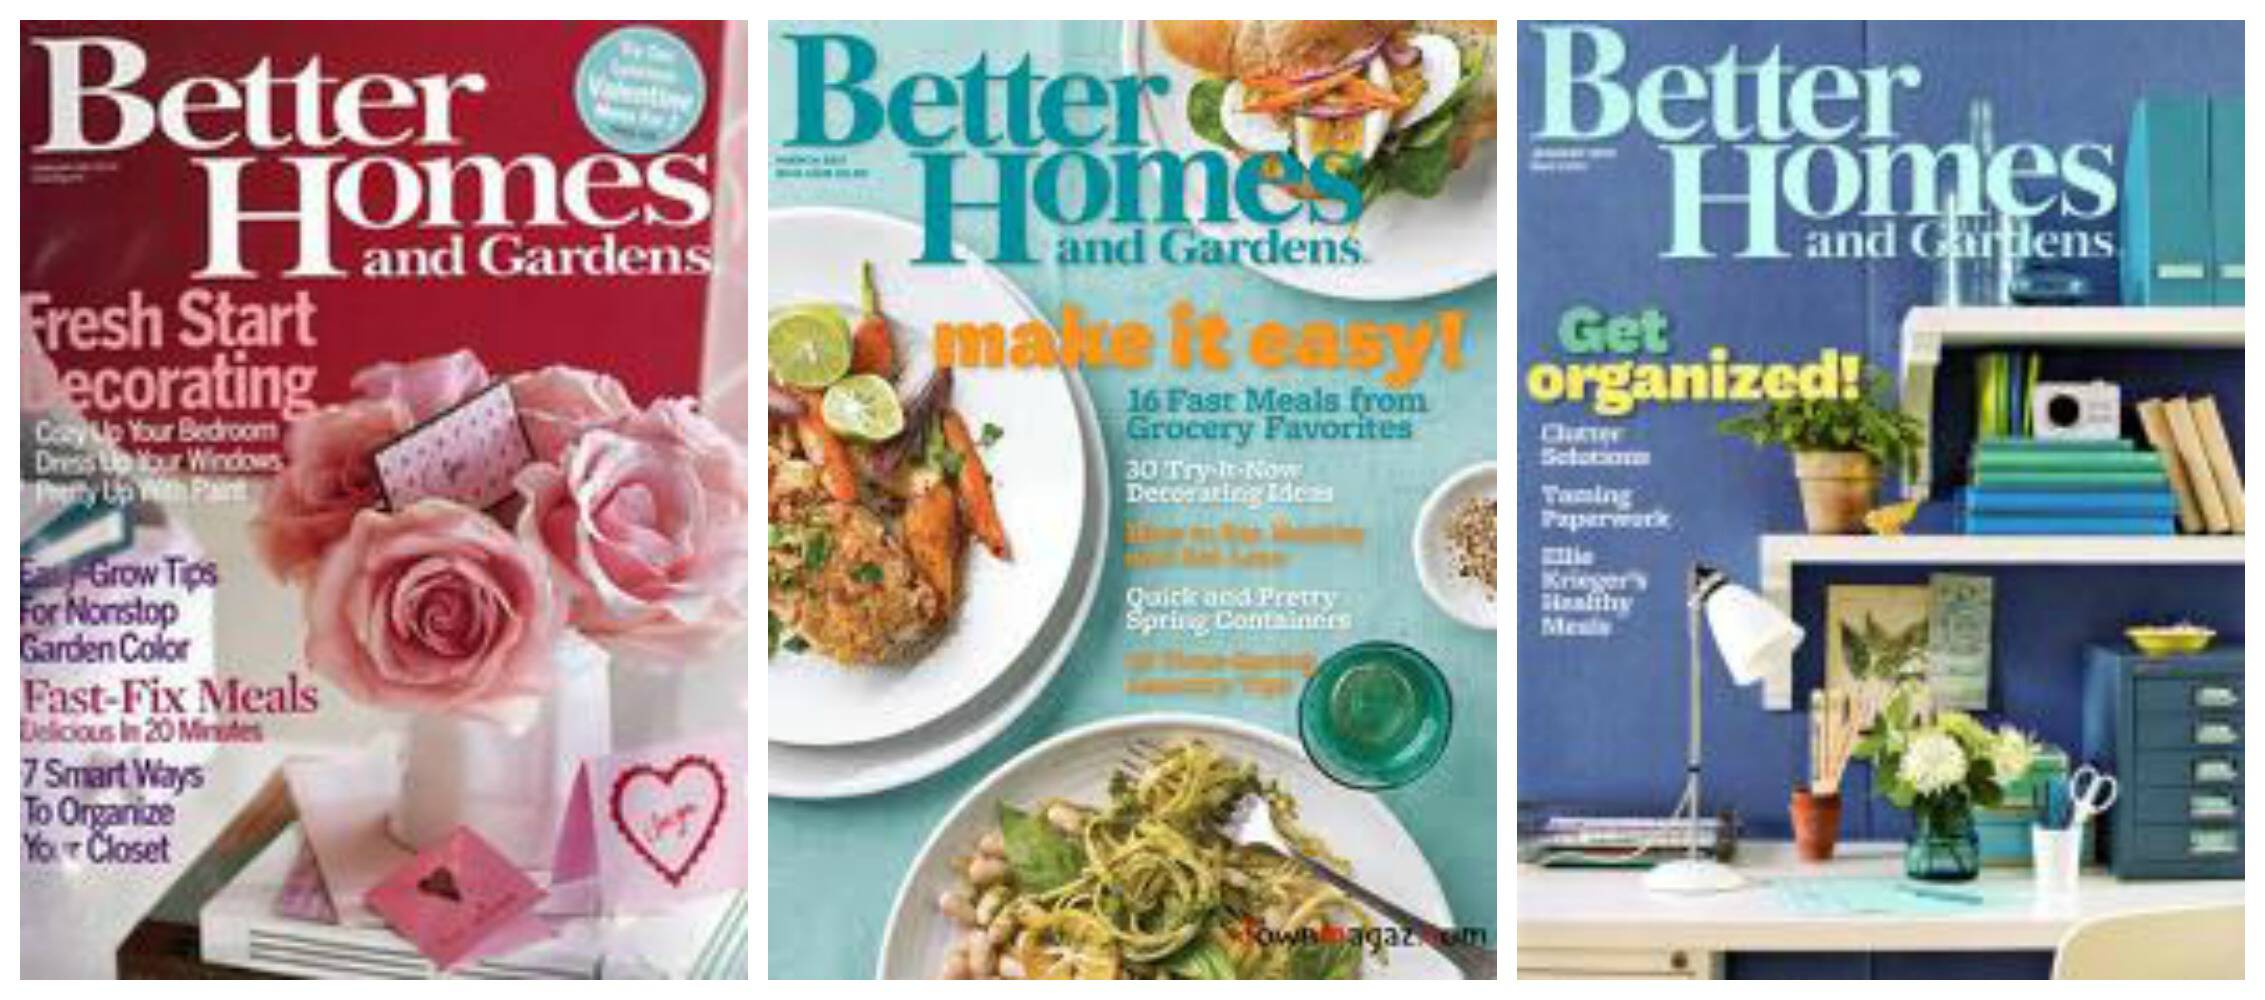 Magazine deals 7 19 vanity fair better homes gardens bon appetit 7 better homes and gardens